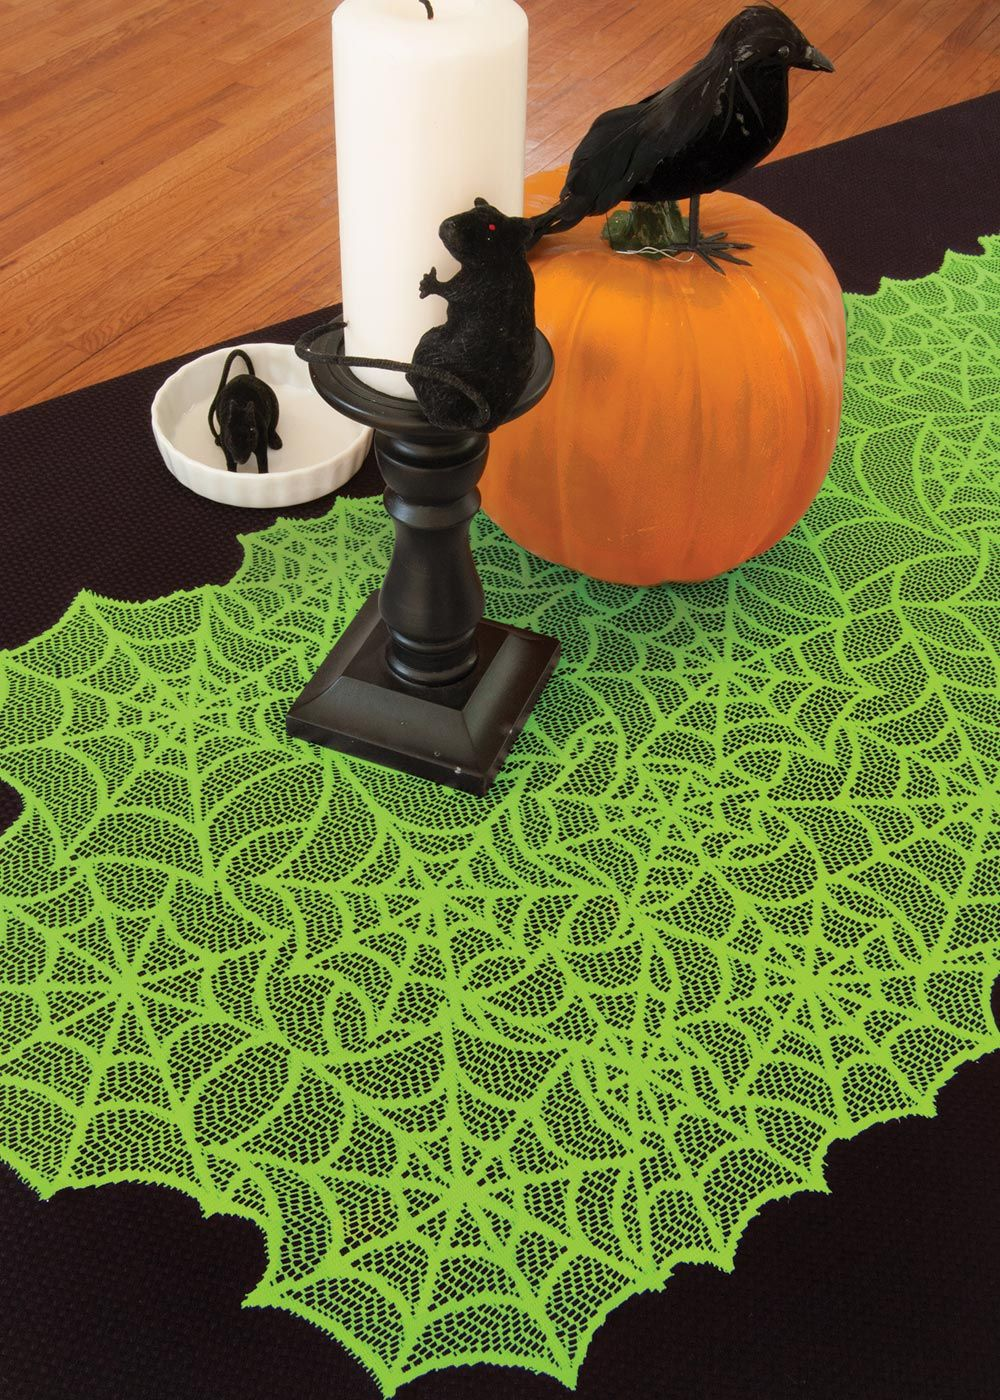 Spider Web Table Runner or Mantle Scarf | Heritage Lace #Halloween #Green #Spiderweb #Table #Decor